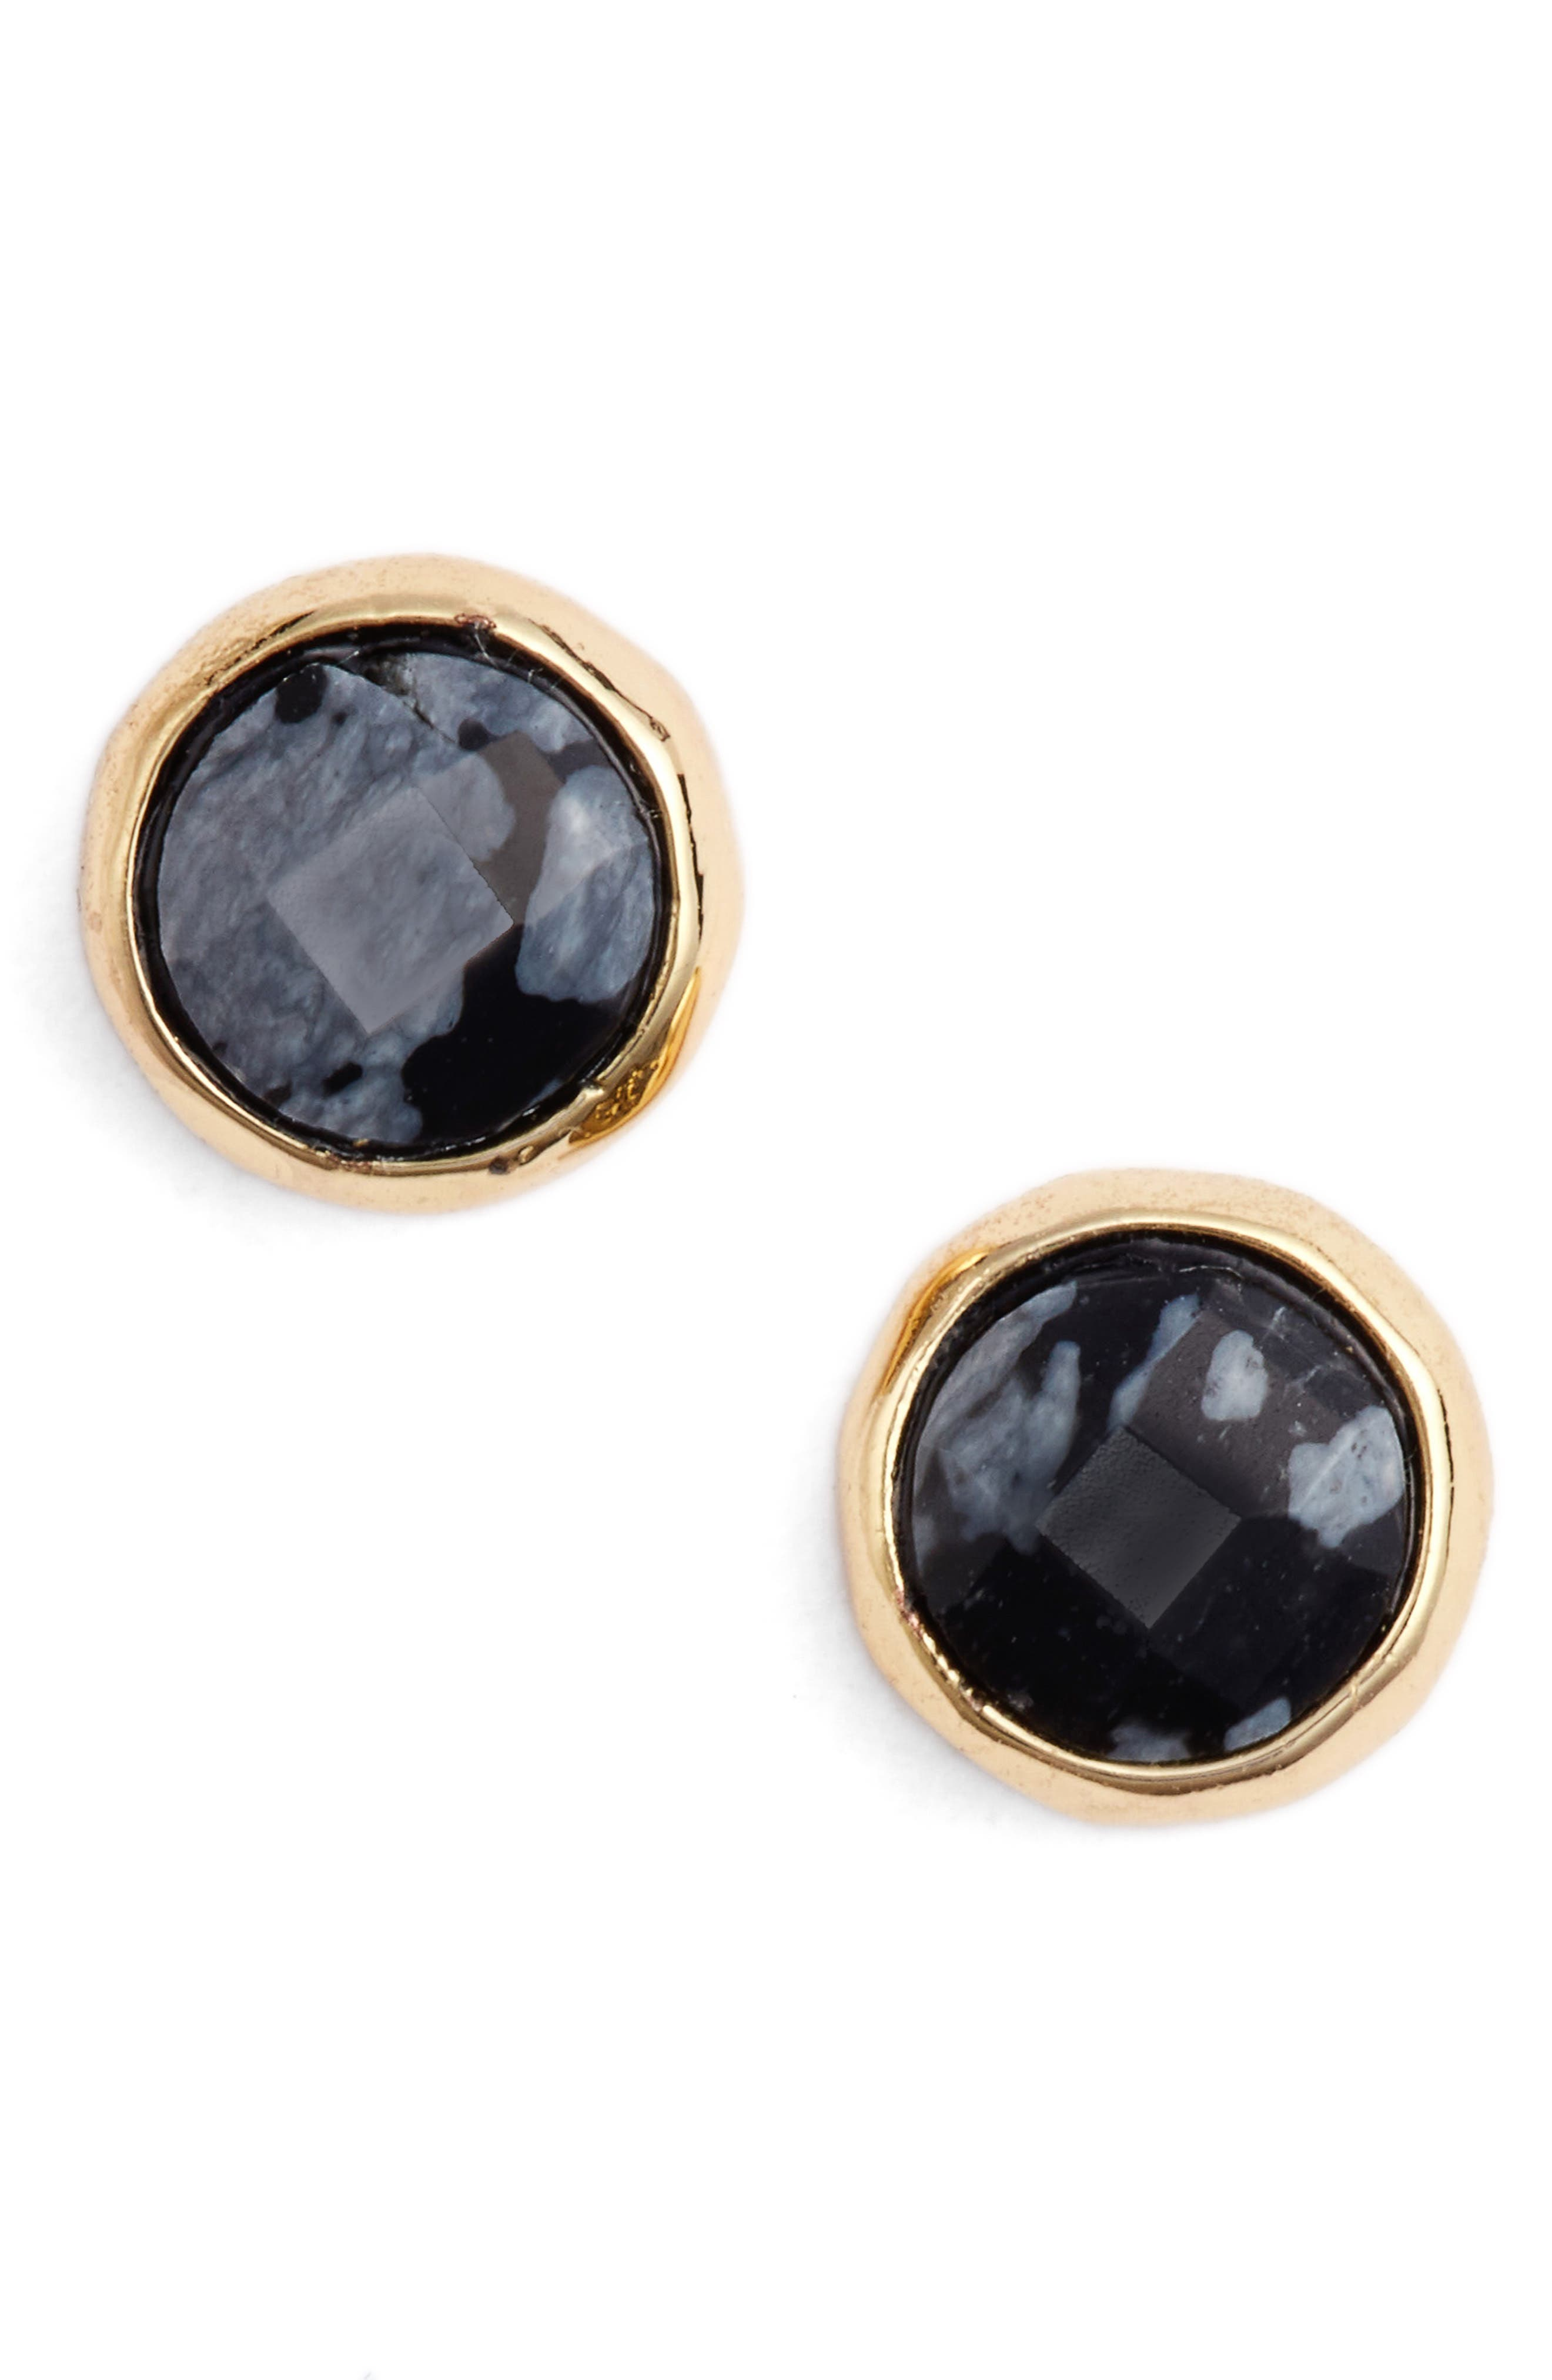 Courage Stud Earrings,                             Main thumbnail 1, color,                             SNOWFLAKE OBSIDIAN/ GOLD